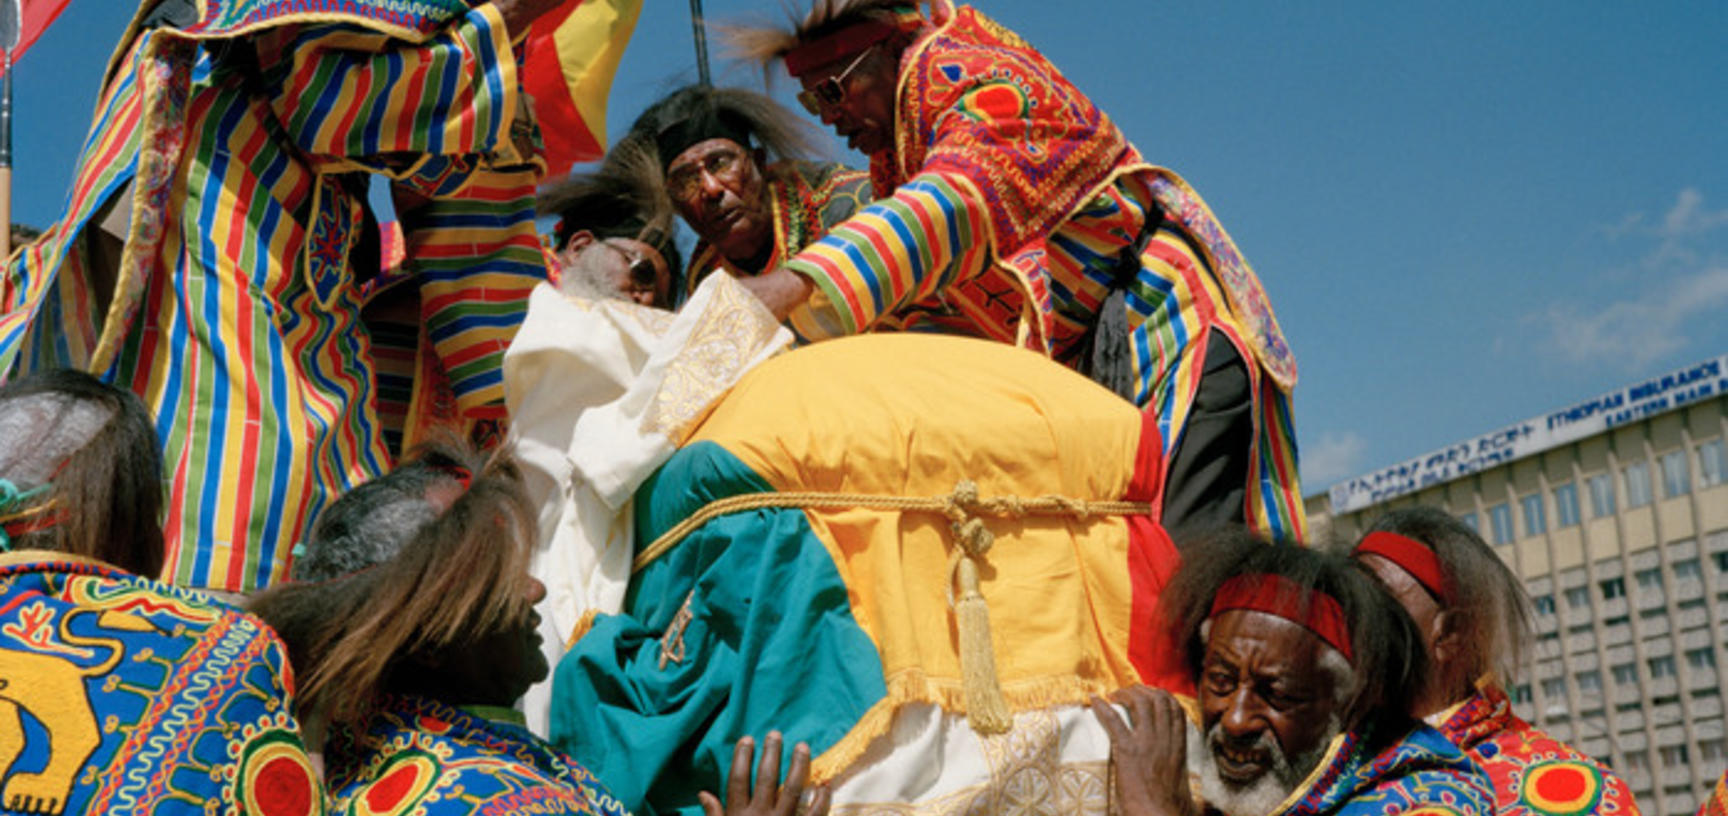 Veteran soldiers take Emperor Haile Selassie's coffin from the processional vehicle and onto their shoulders. Addis Ababa, Ethiopia. Photograph by Peter Marlow. 2000.